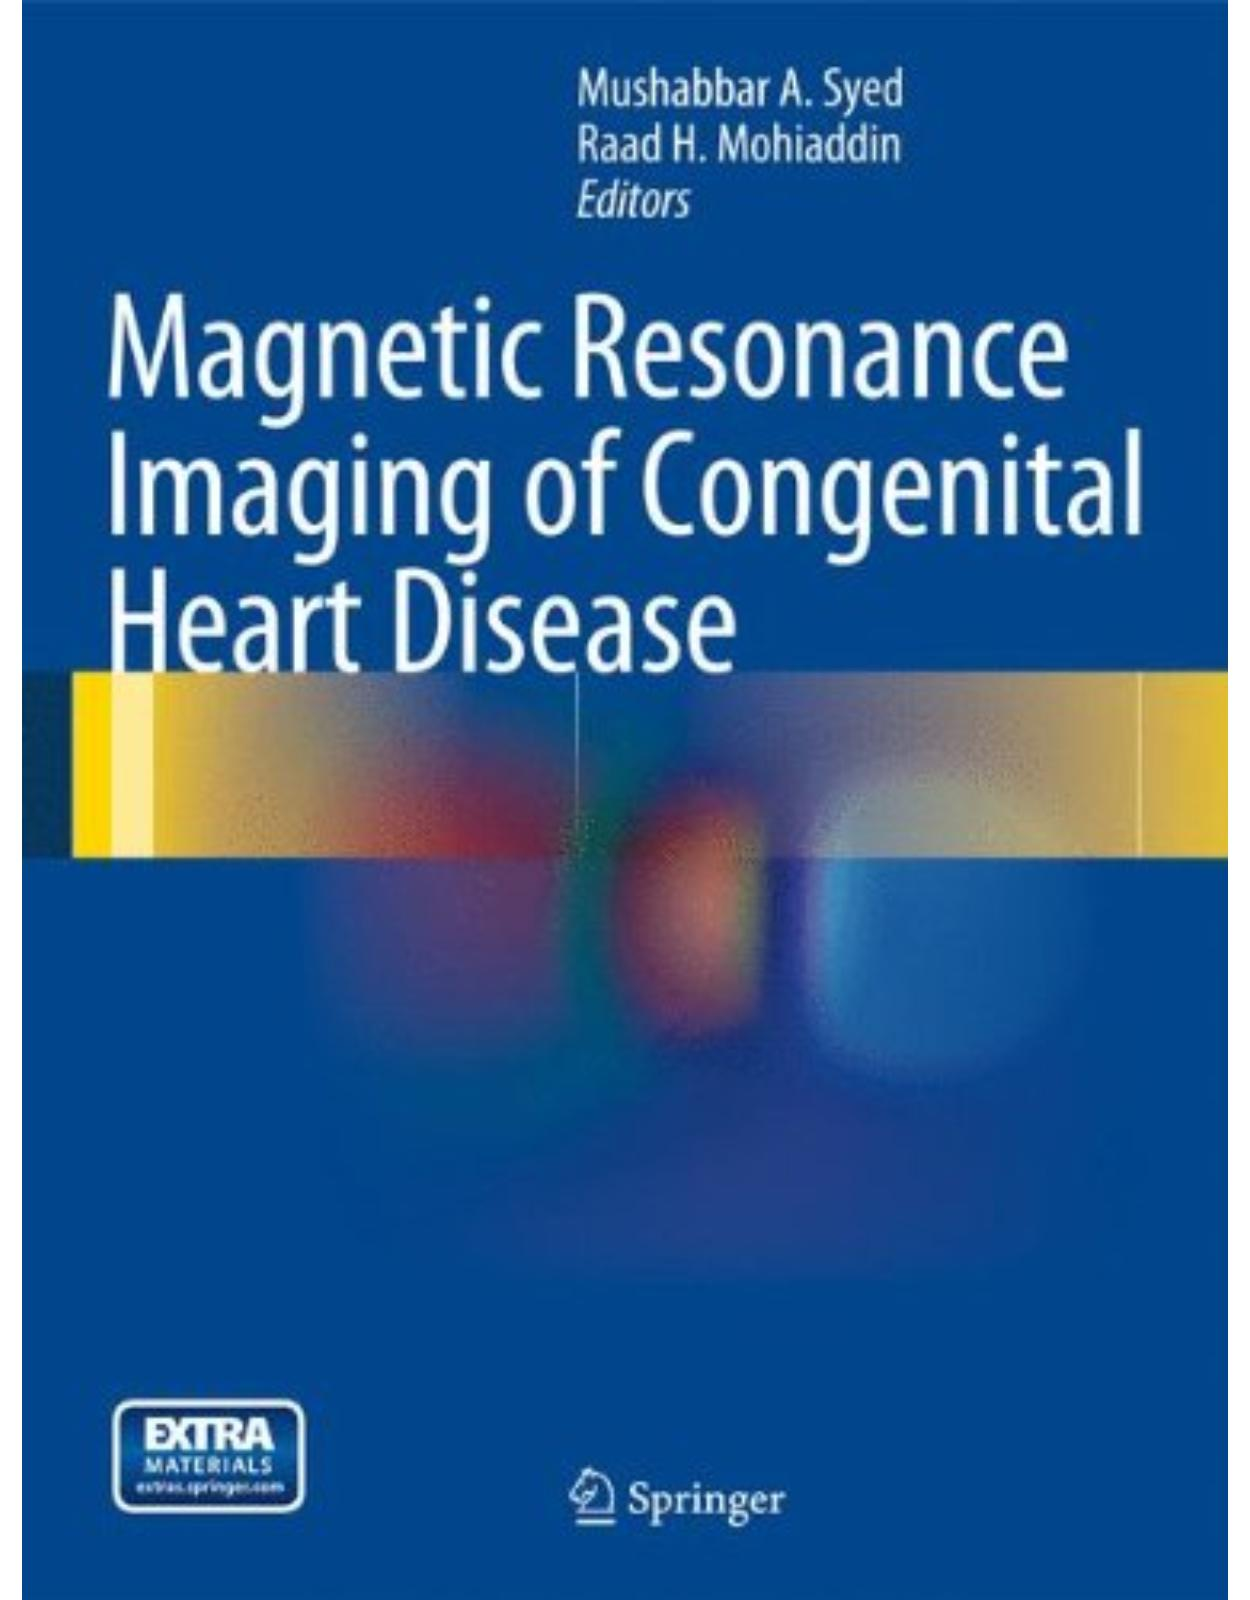 Magnetic Resonance Imaging of Congenital Heart Disease